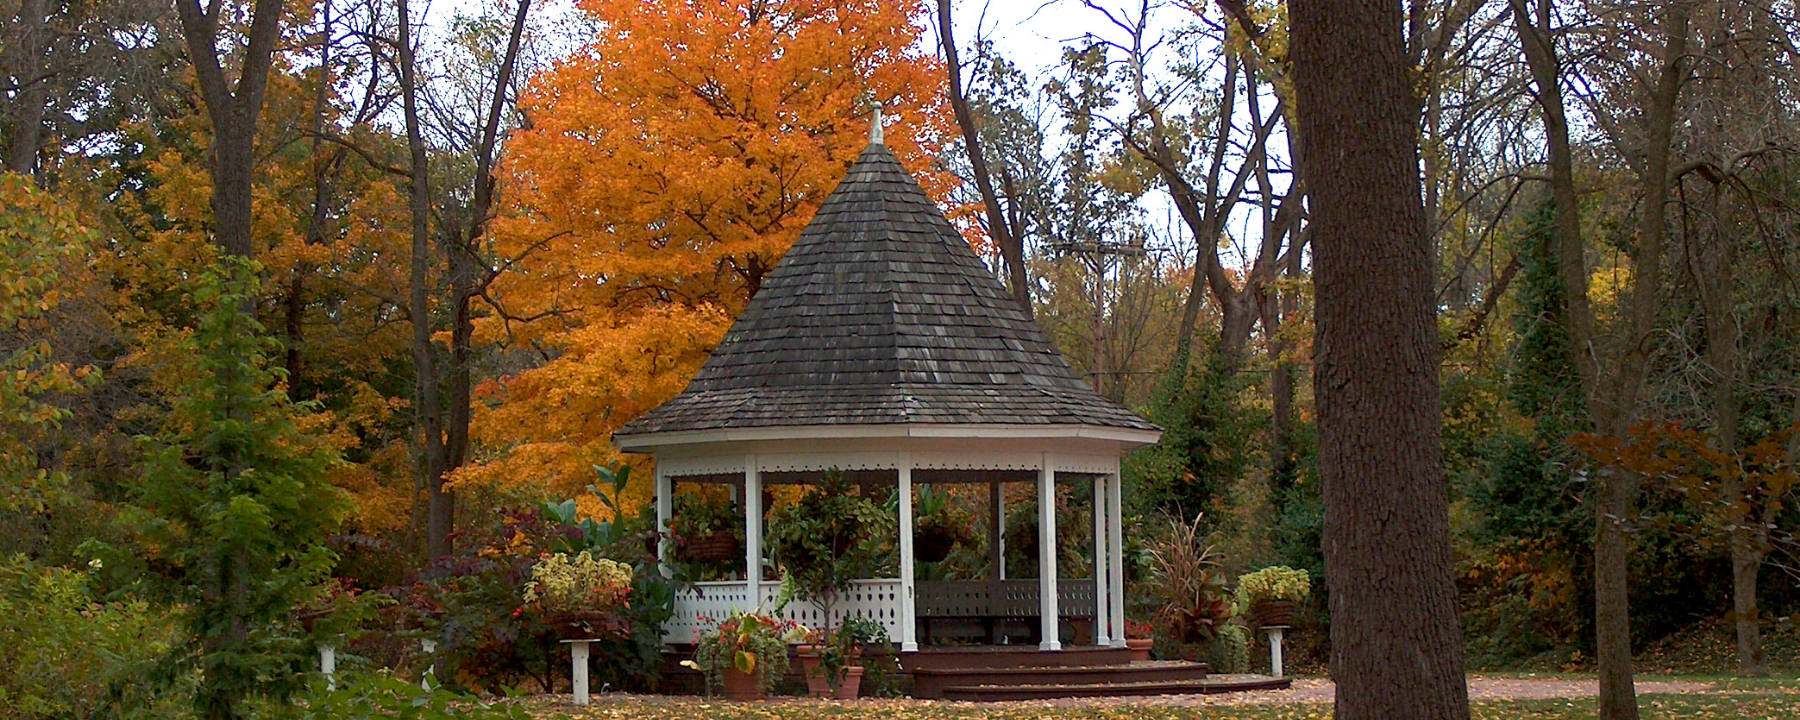 Deep River Gazebo in Fall